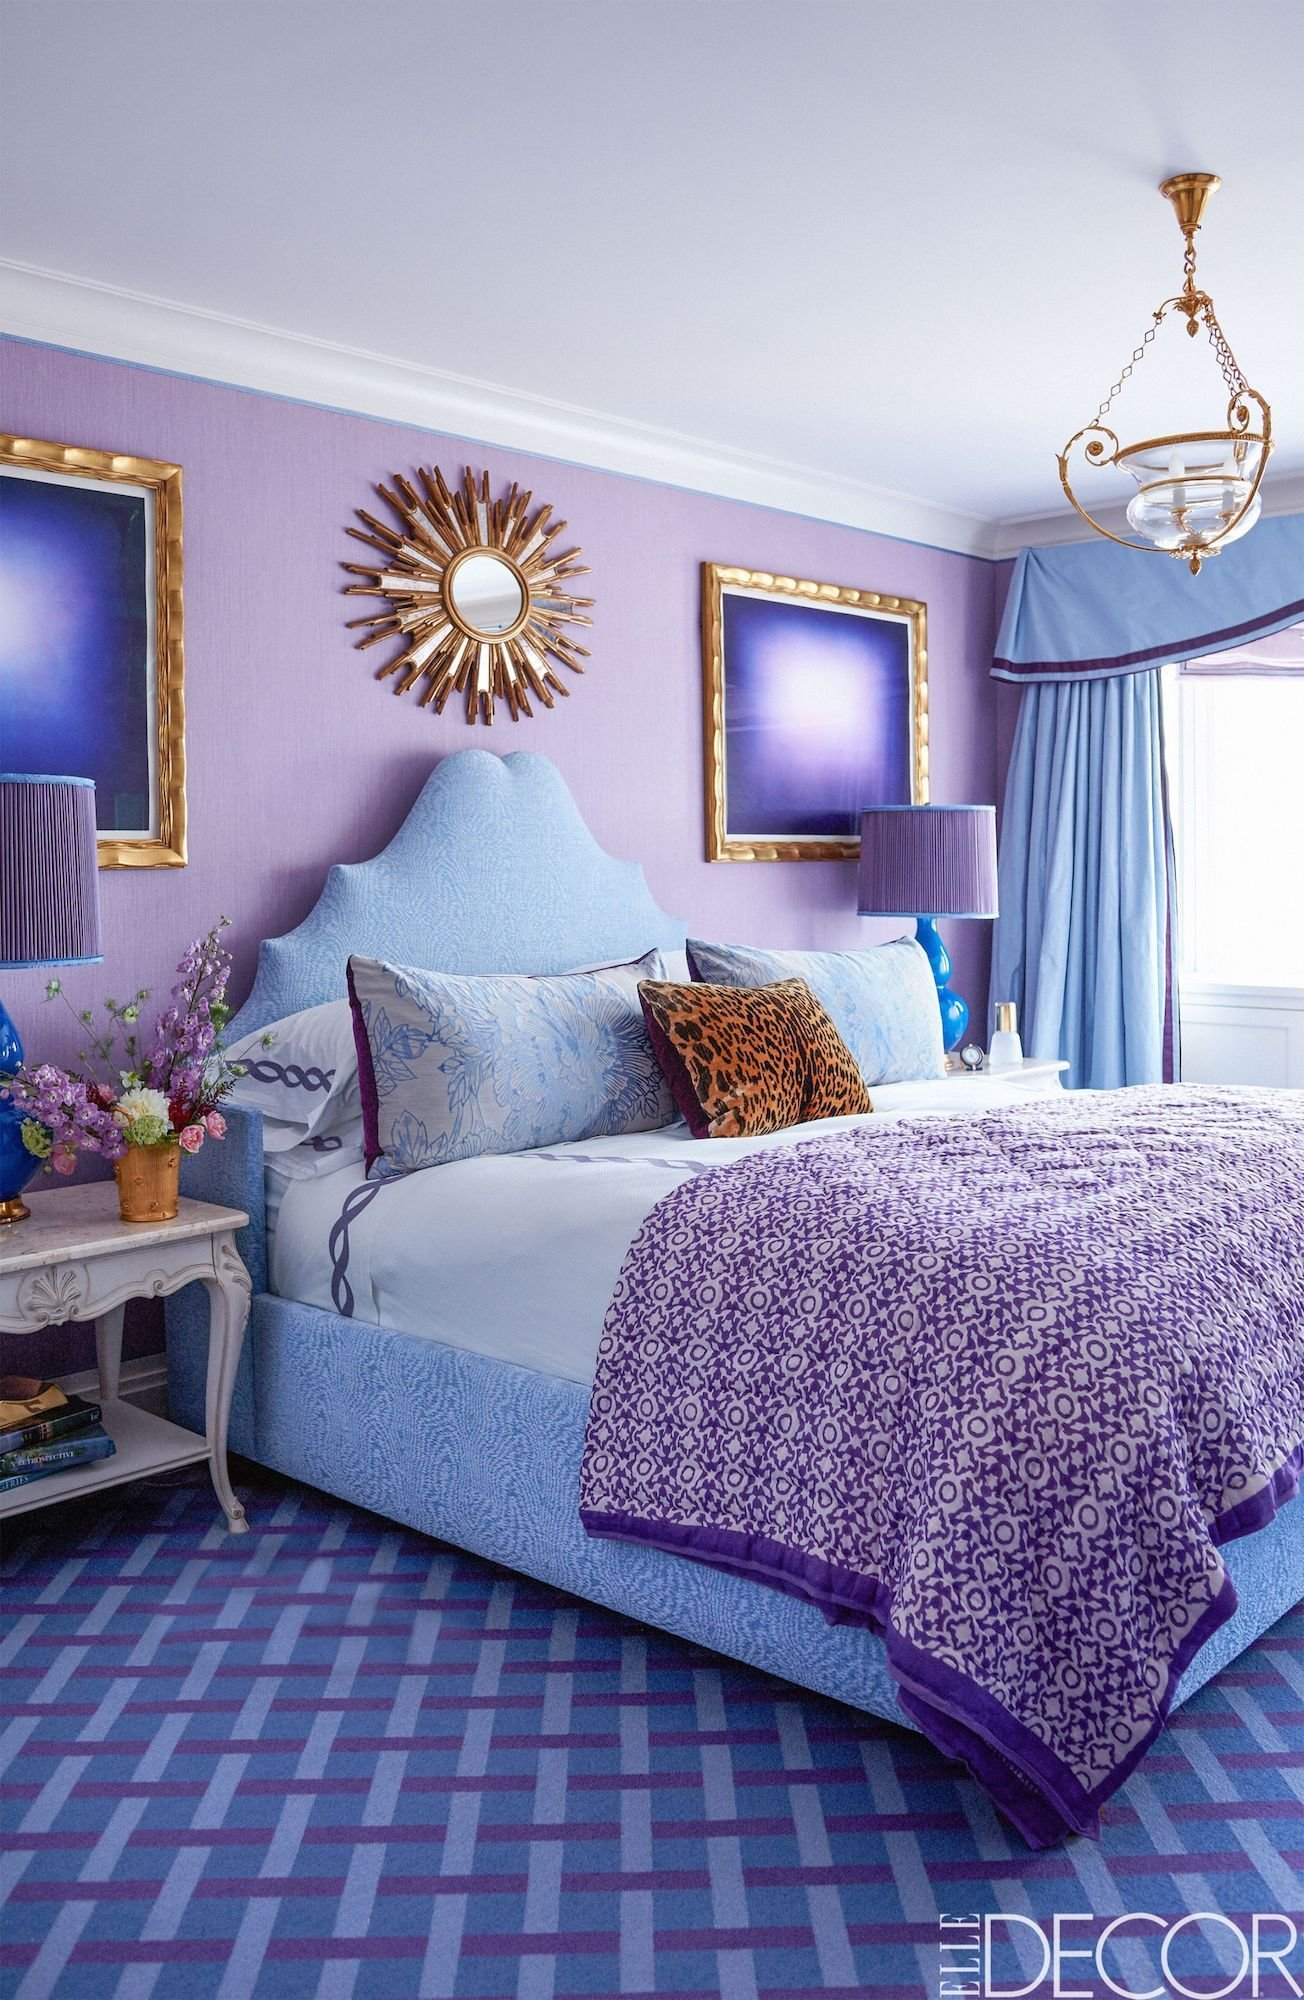 Best Paint Your Bedroom This Pretty Shade For A Tranquil Vibe With Pictures